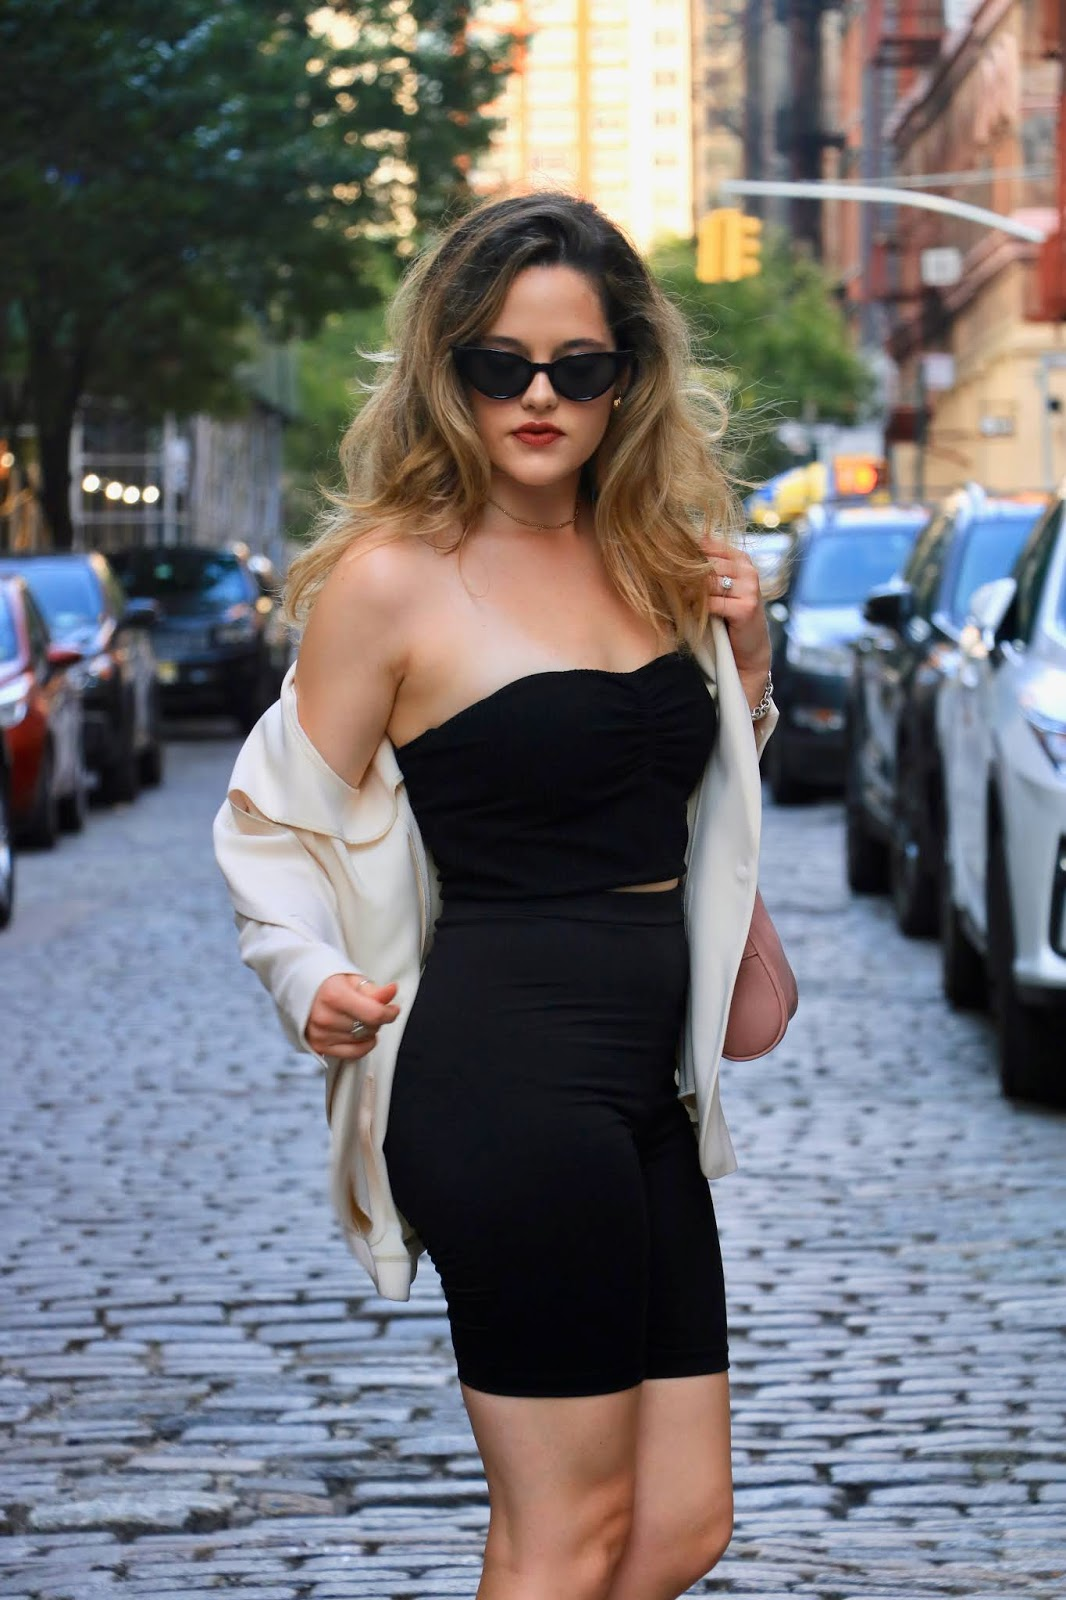 Nyc fashion blogger Kathleen Harper's tube top outfit idea.